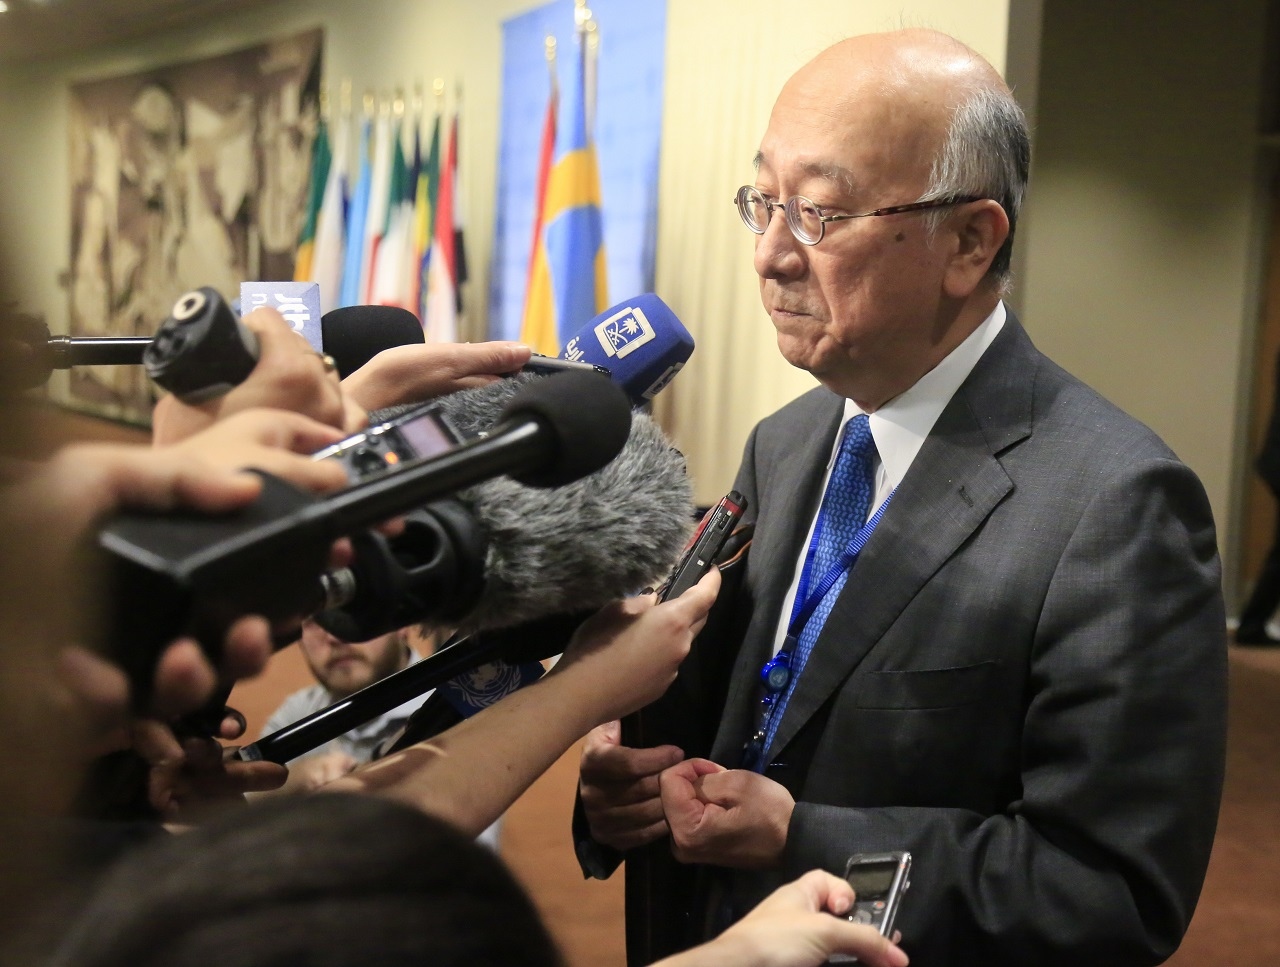 Japan's United Nations Ambassador Koro Bessho speak with reporters before attending U.N. Security Council consultations on North Korea, Tuesday Aug. 29, 2017 at U.N. headquarters.